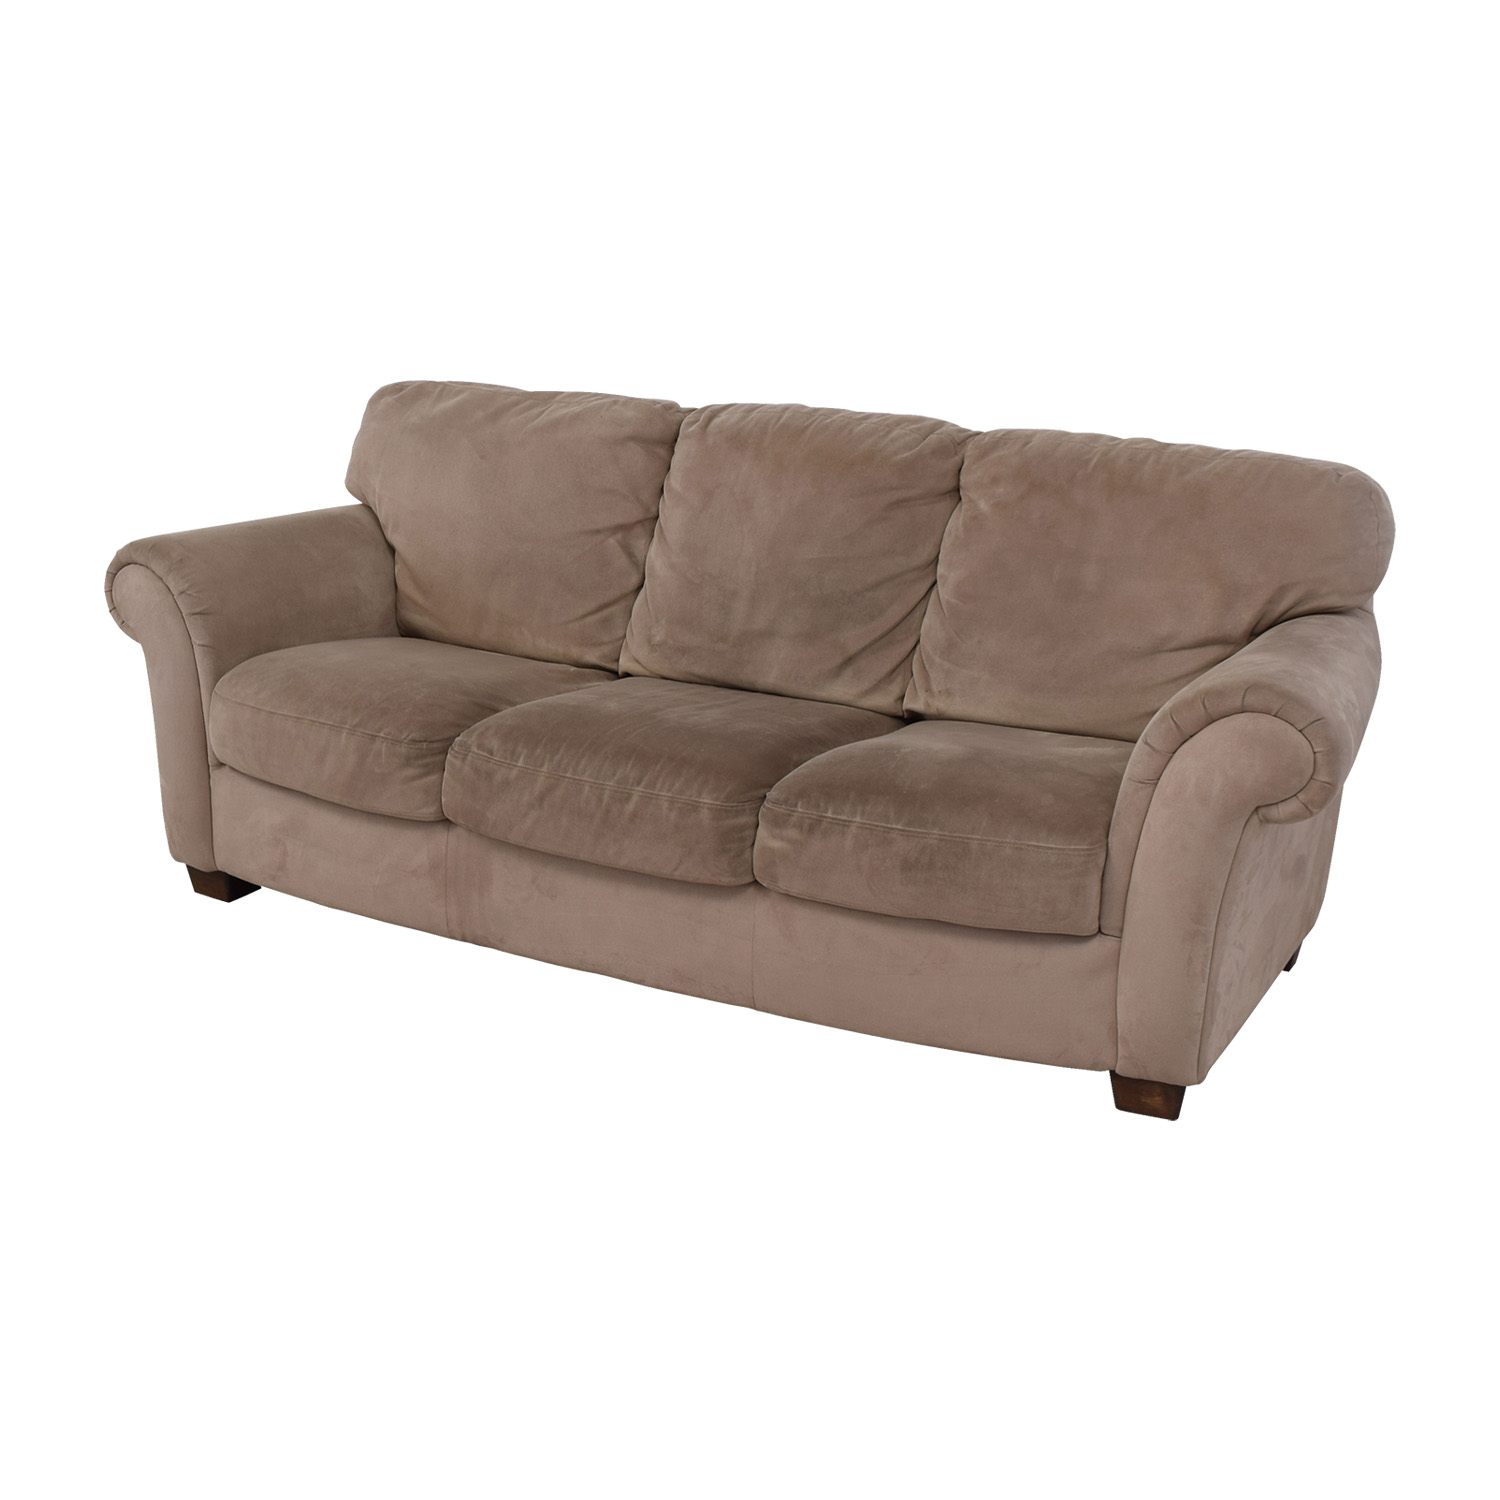 three cushion sofa fast movie trailer 90 off macy 39s tan sofas